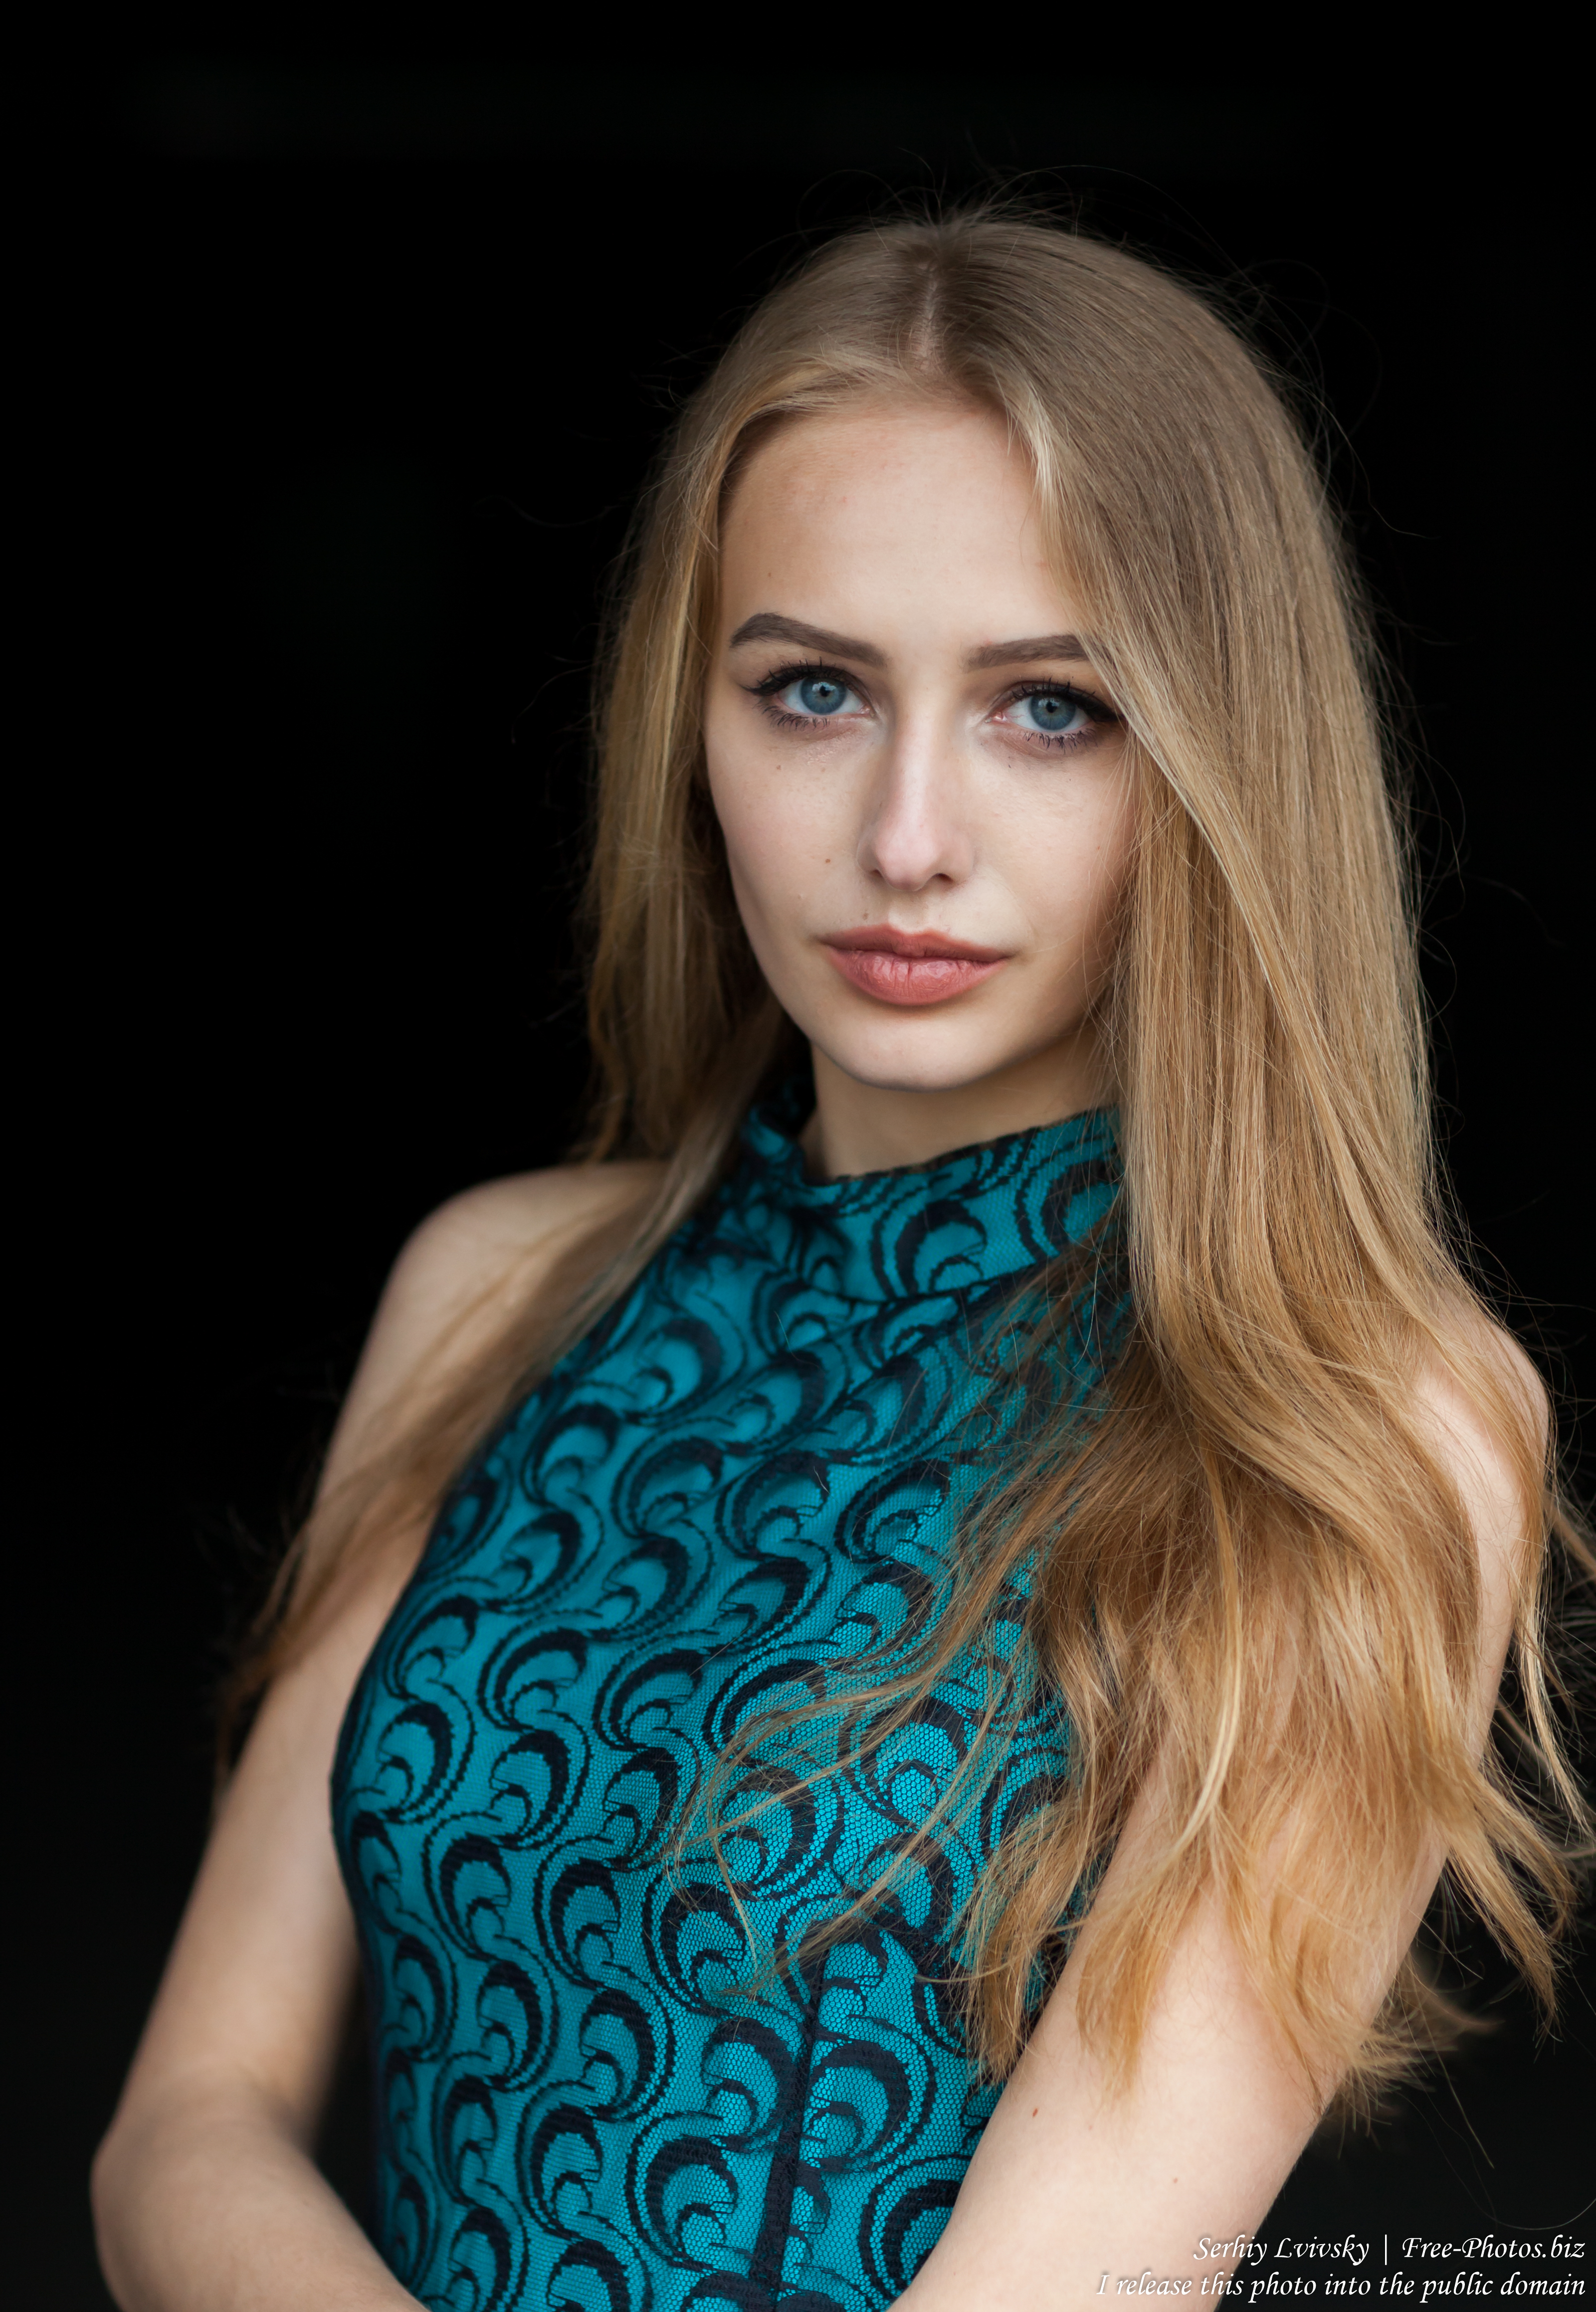 Lila - a 15-year-old natural blonde girl photographed in May 2017 by Serhiy Lvivsky, picture 22